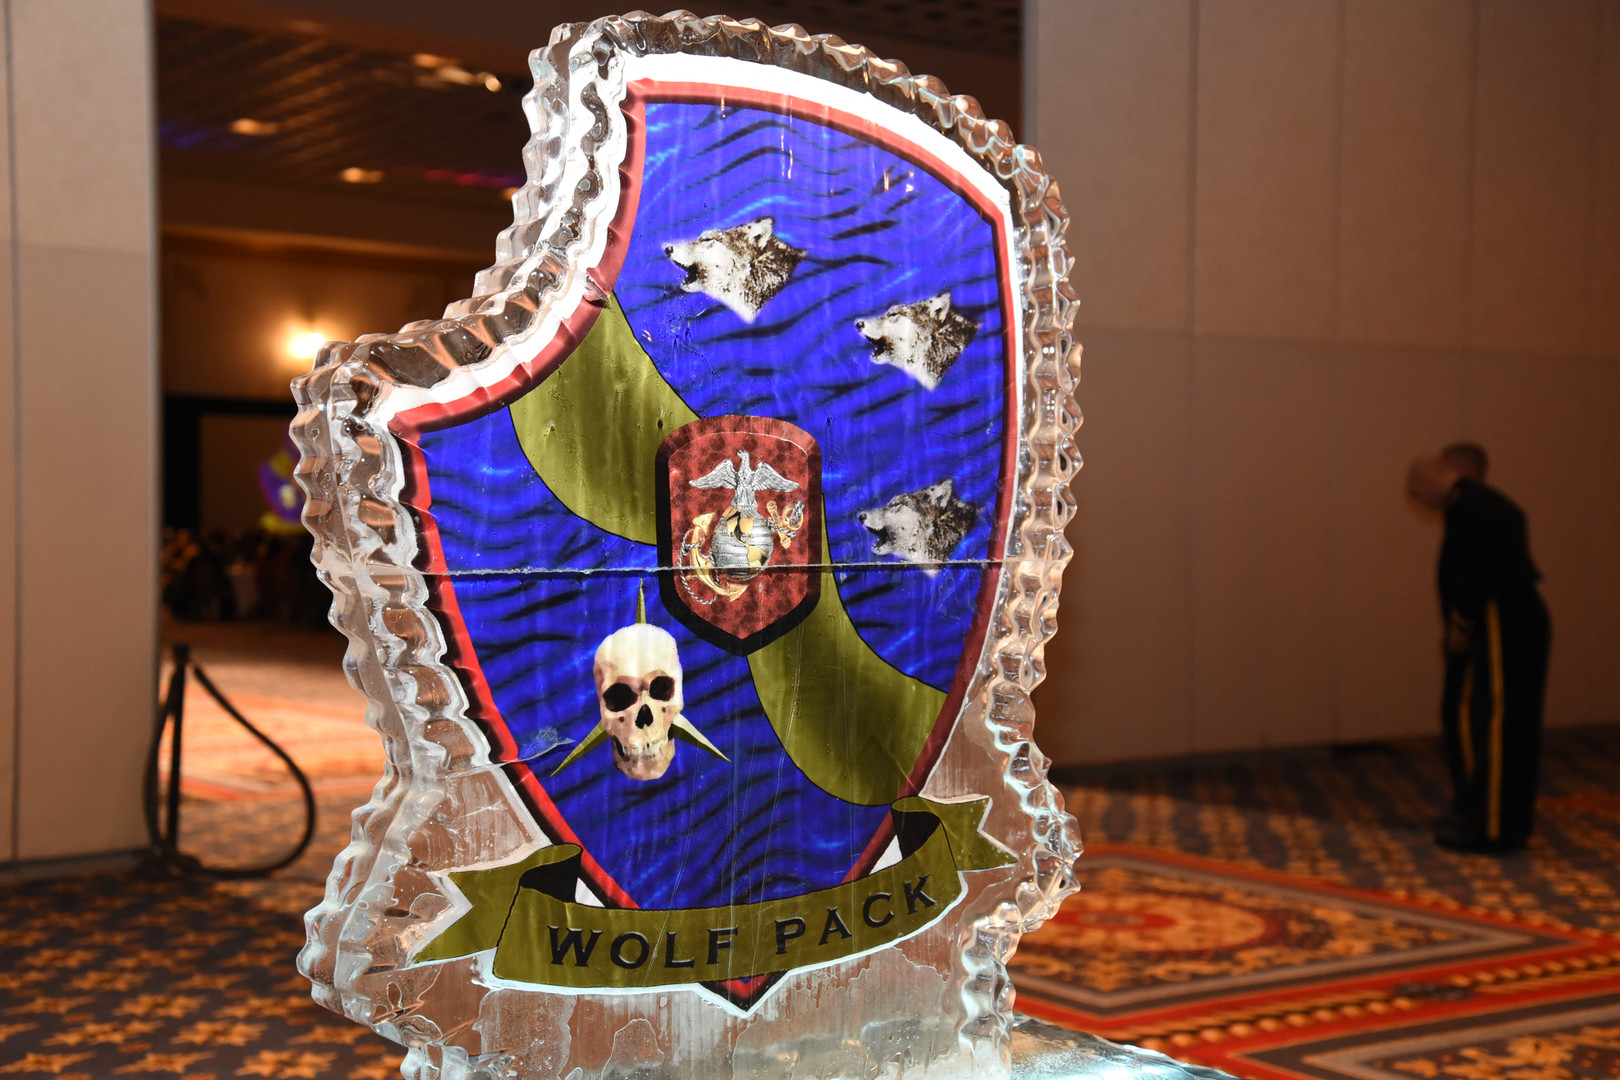 An ice sculpture at a Marine Corps Ball in Las Vegas, NV.